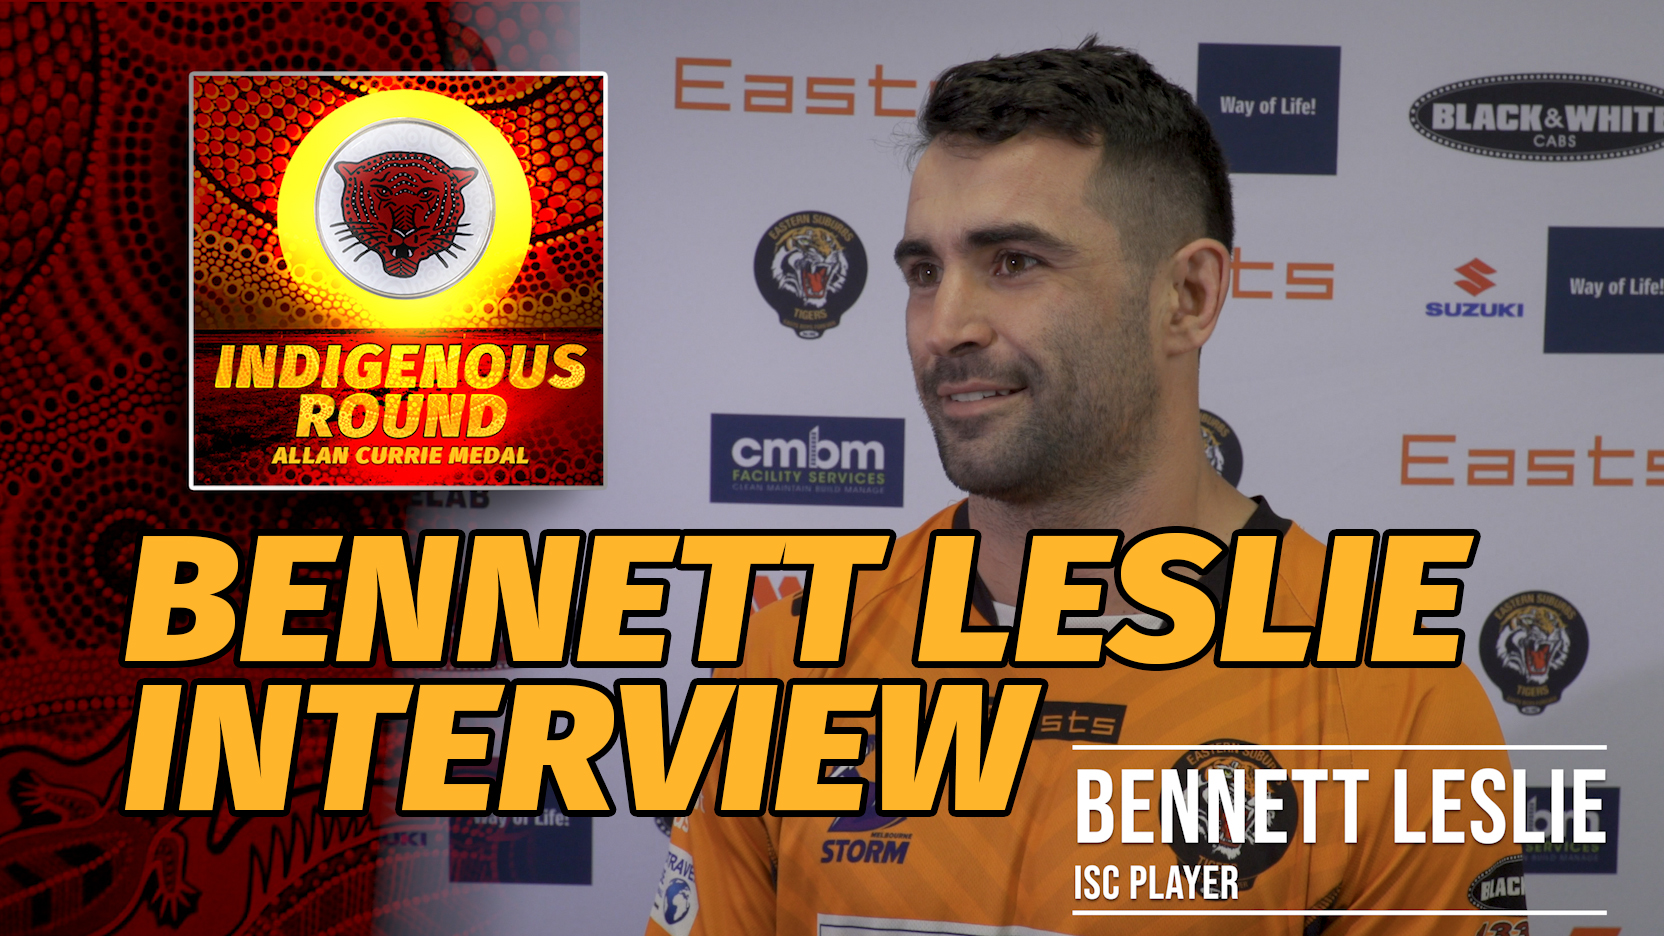 Bennett Leslie interview Intrust Super Cup and Indigenous Player, Bennett Leslie, explains what Indigenous Round means to him. #GoTheTigers #Season2019 #OrangeandGold #EGF #ProudIndigenous #IndigenousRound